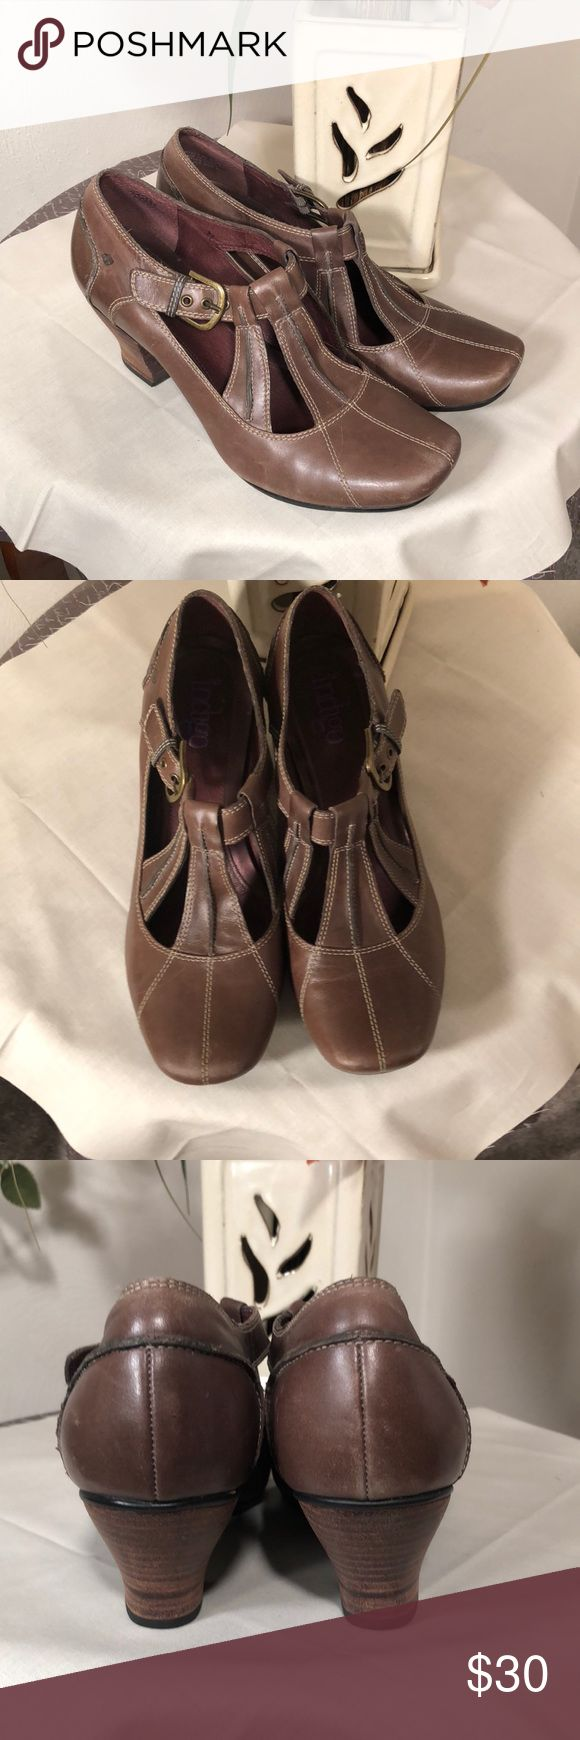 Clarks indigo 👠 shoes!! Sz 9.5 Clarks Indigo Brown heeled shoes!  Sz 9.5. They fit closer to a 9, though. Very comfortable!! Heel is 2.5 in approx. Clarks Shoes Heels